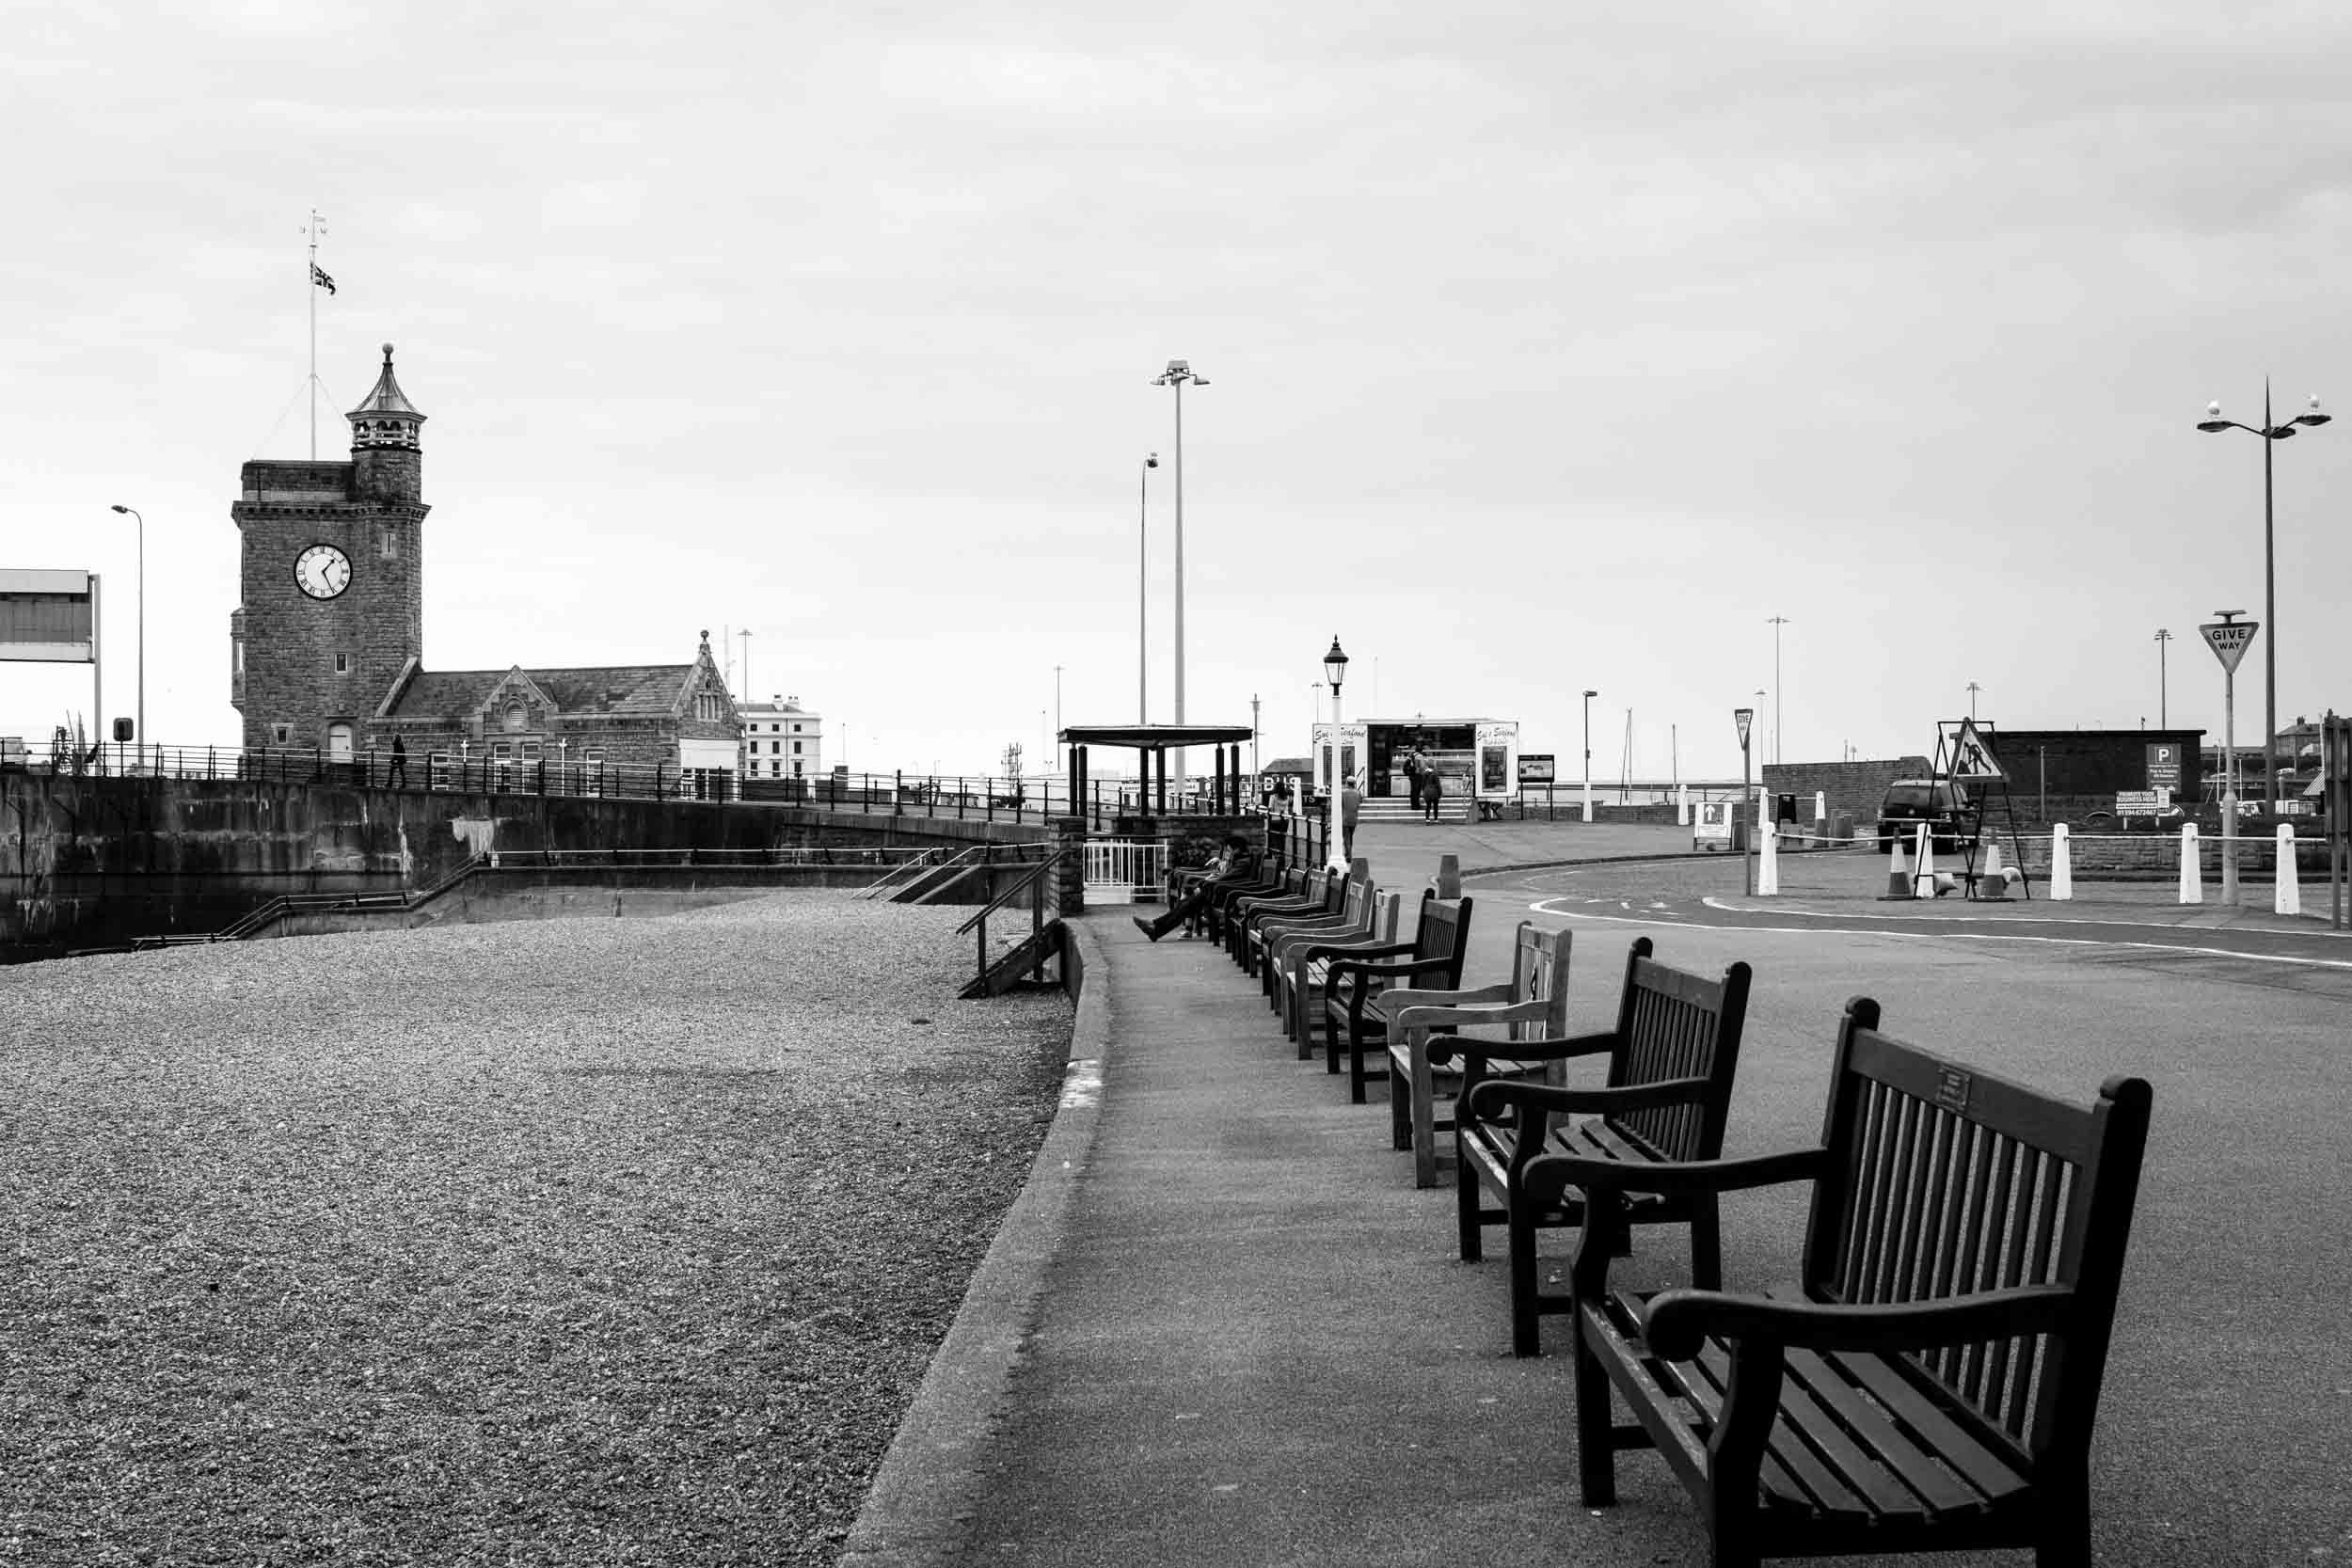 20140411_Dover__MG_2479-2